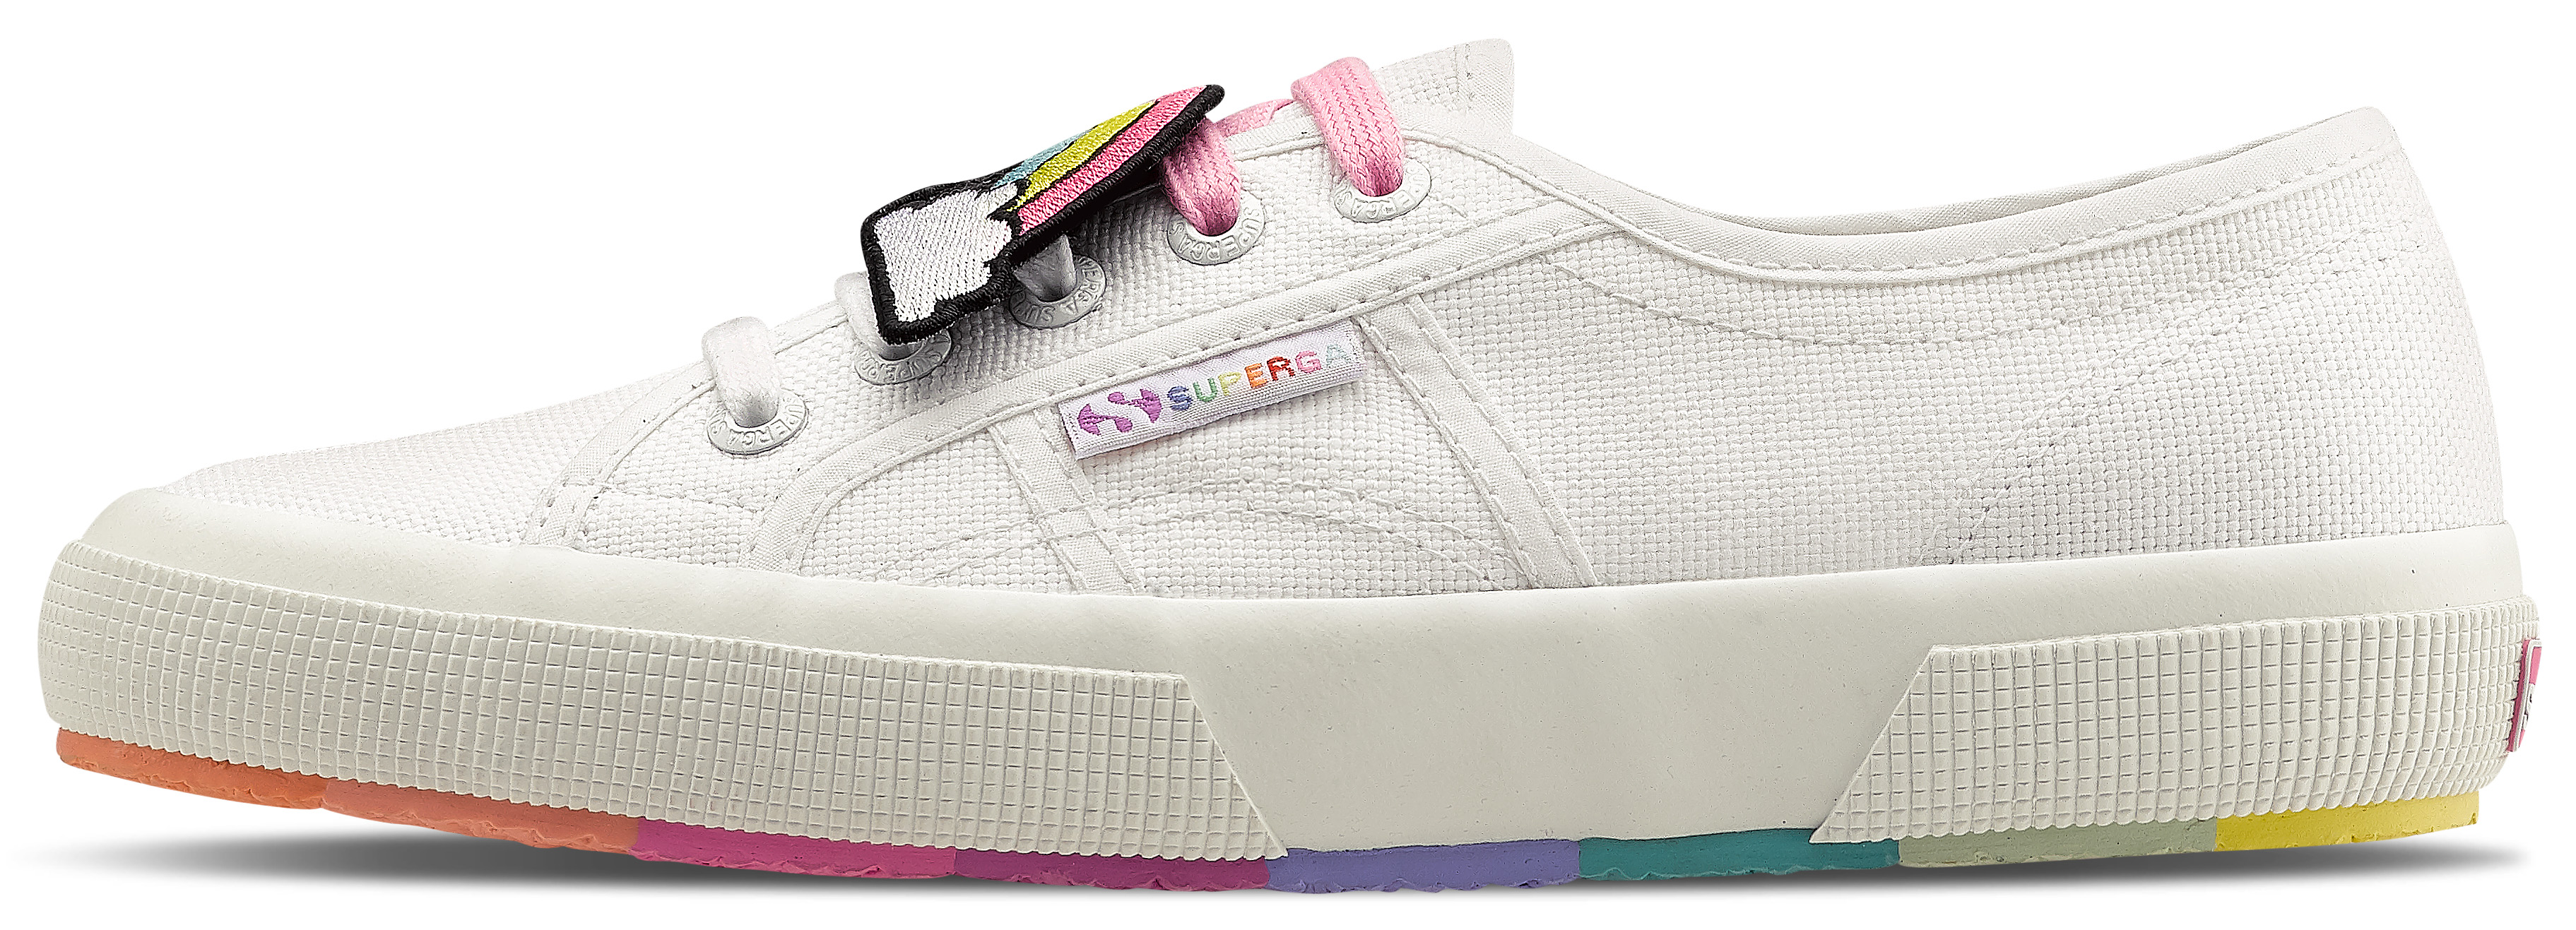 Le sneakers più cool del momento  Sono Selected By AW LAB - Luuk ... 7a052eac550